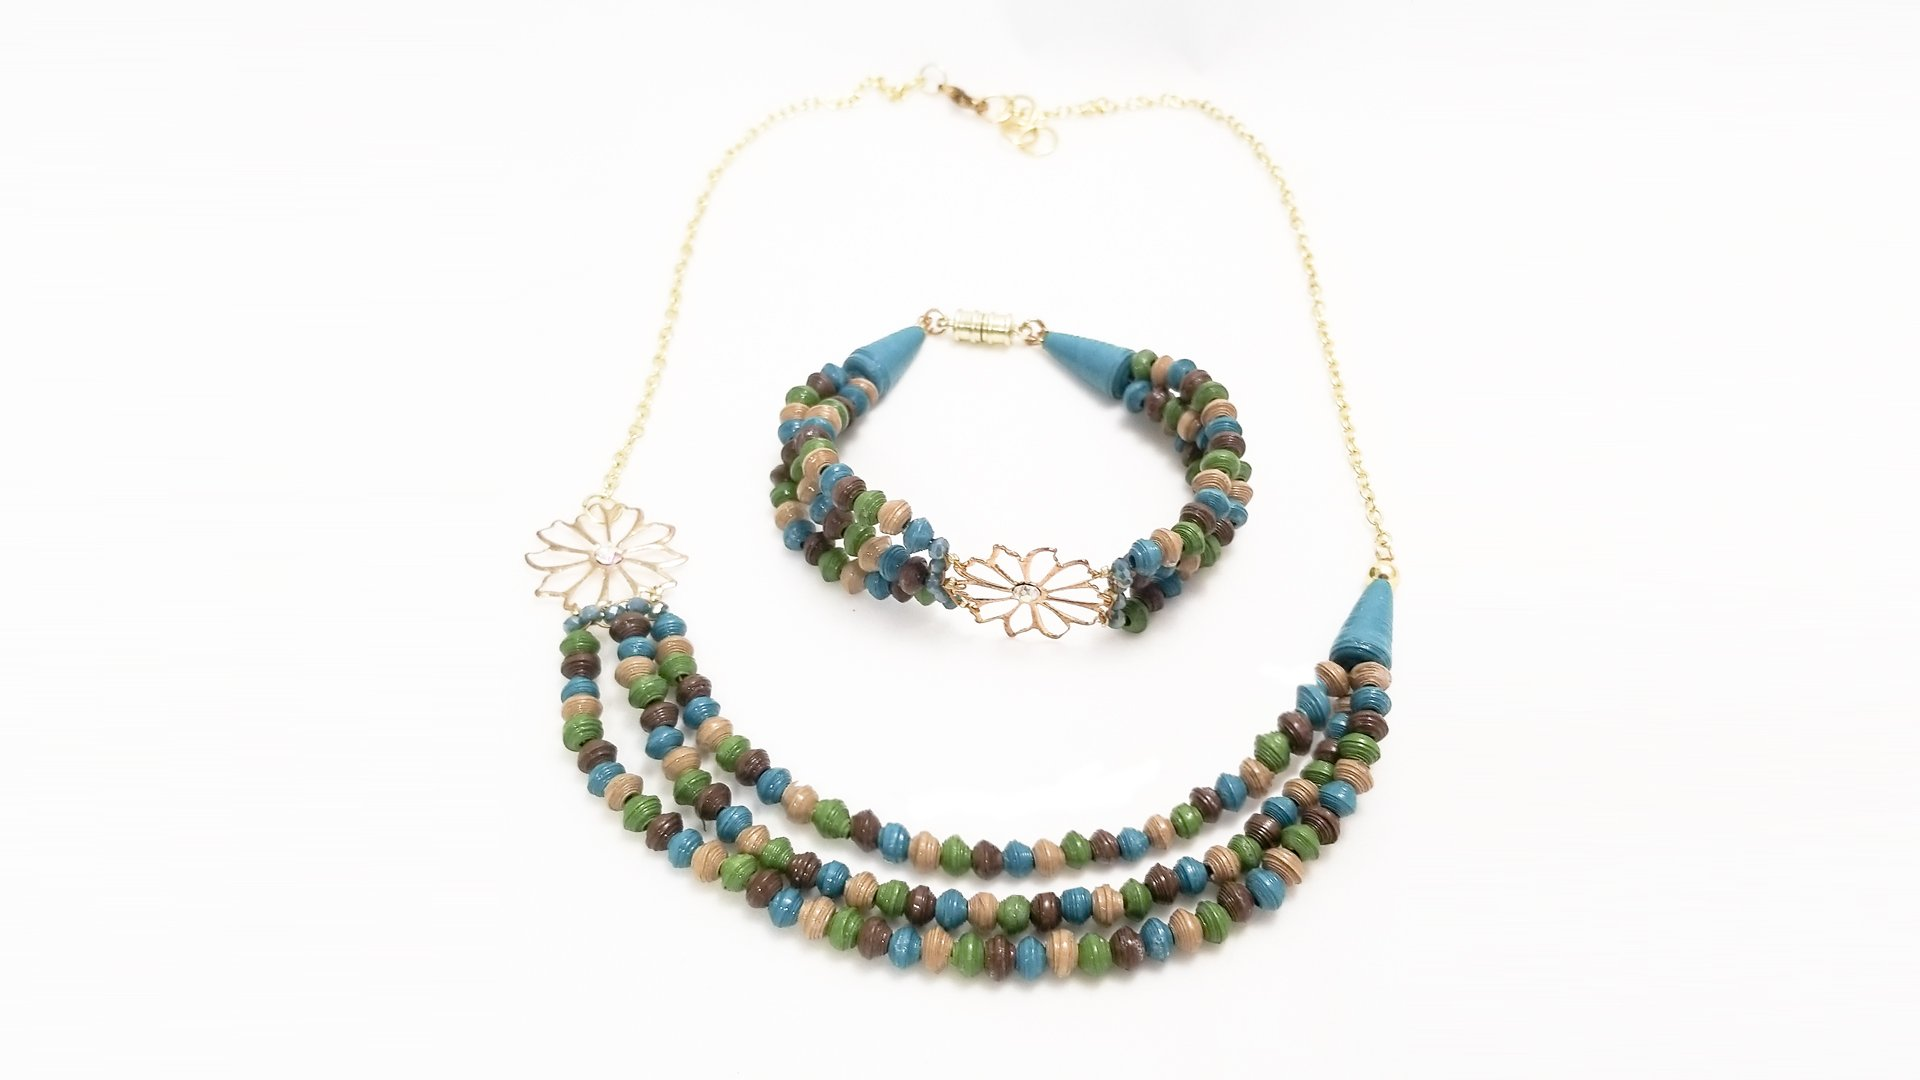 Multi-Strand Paper Bead Bracelet Necklace